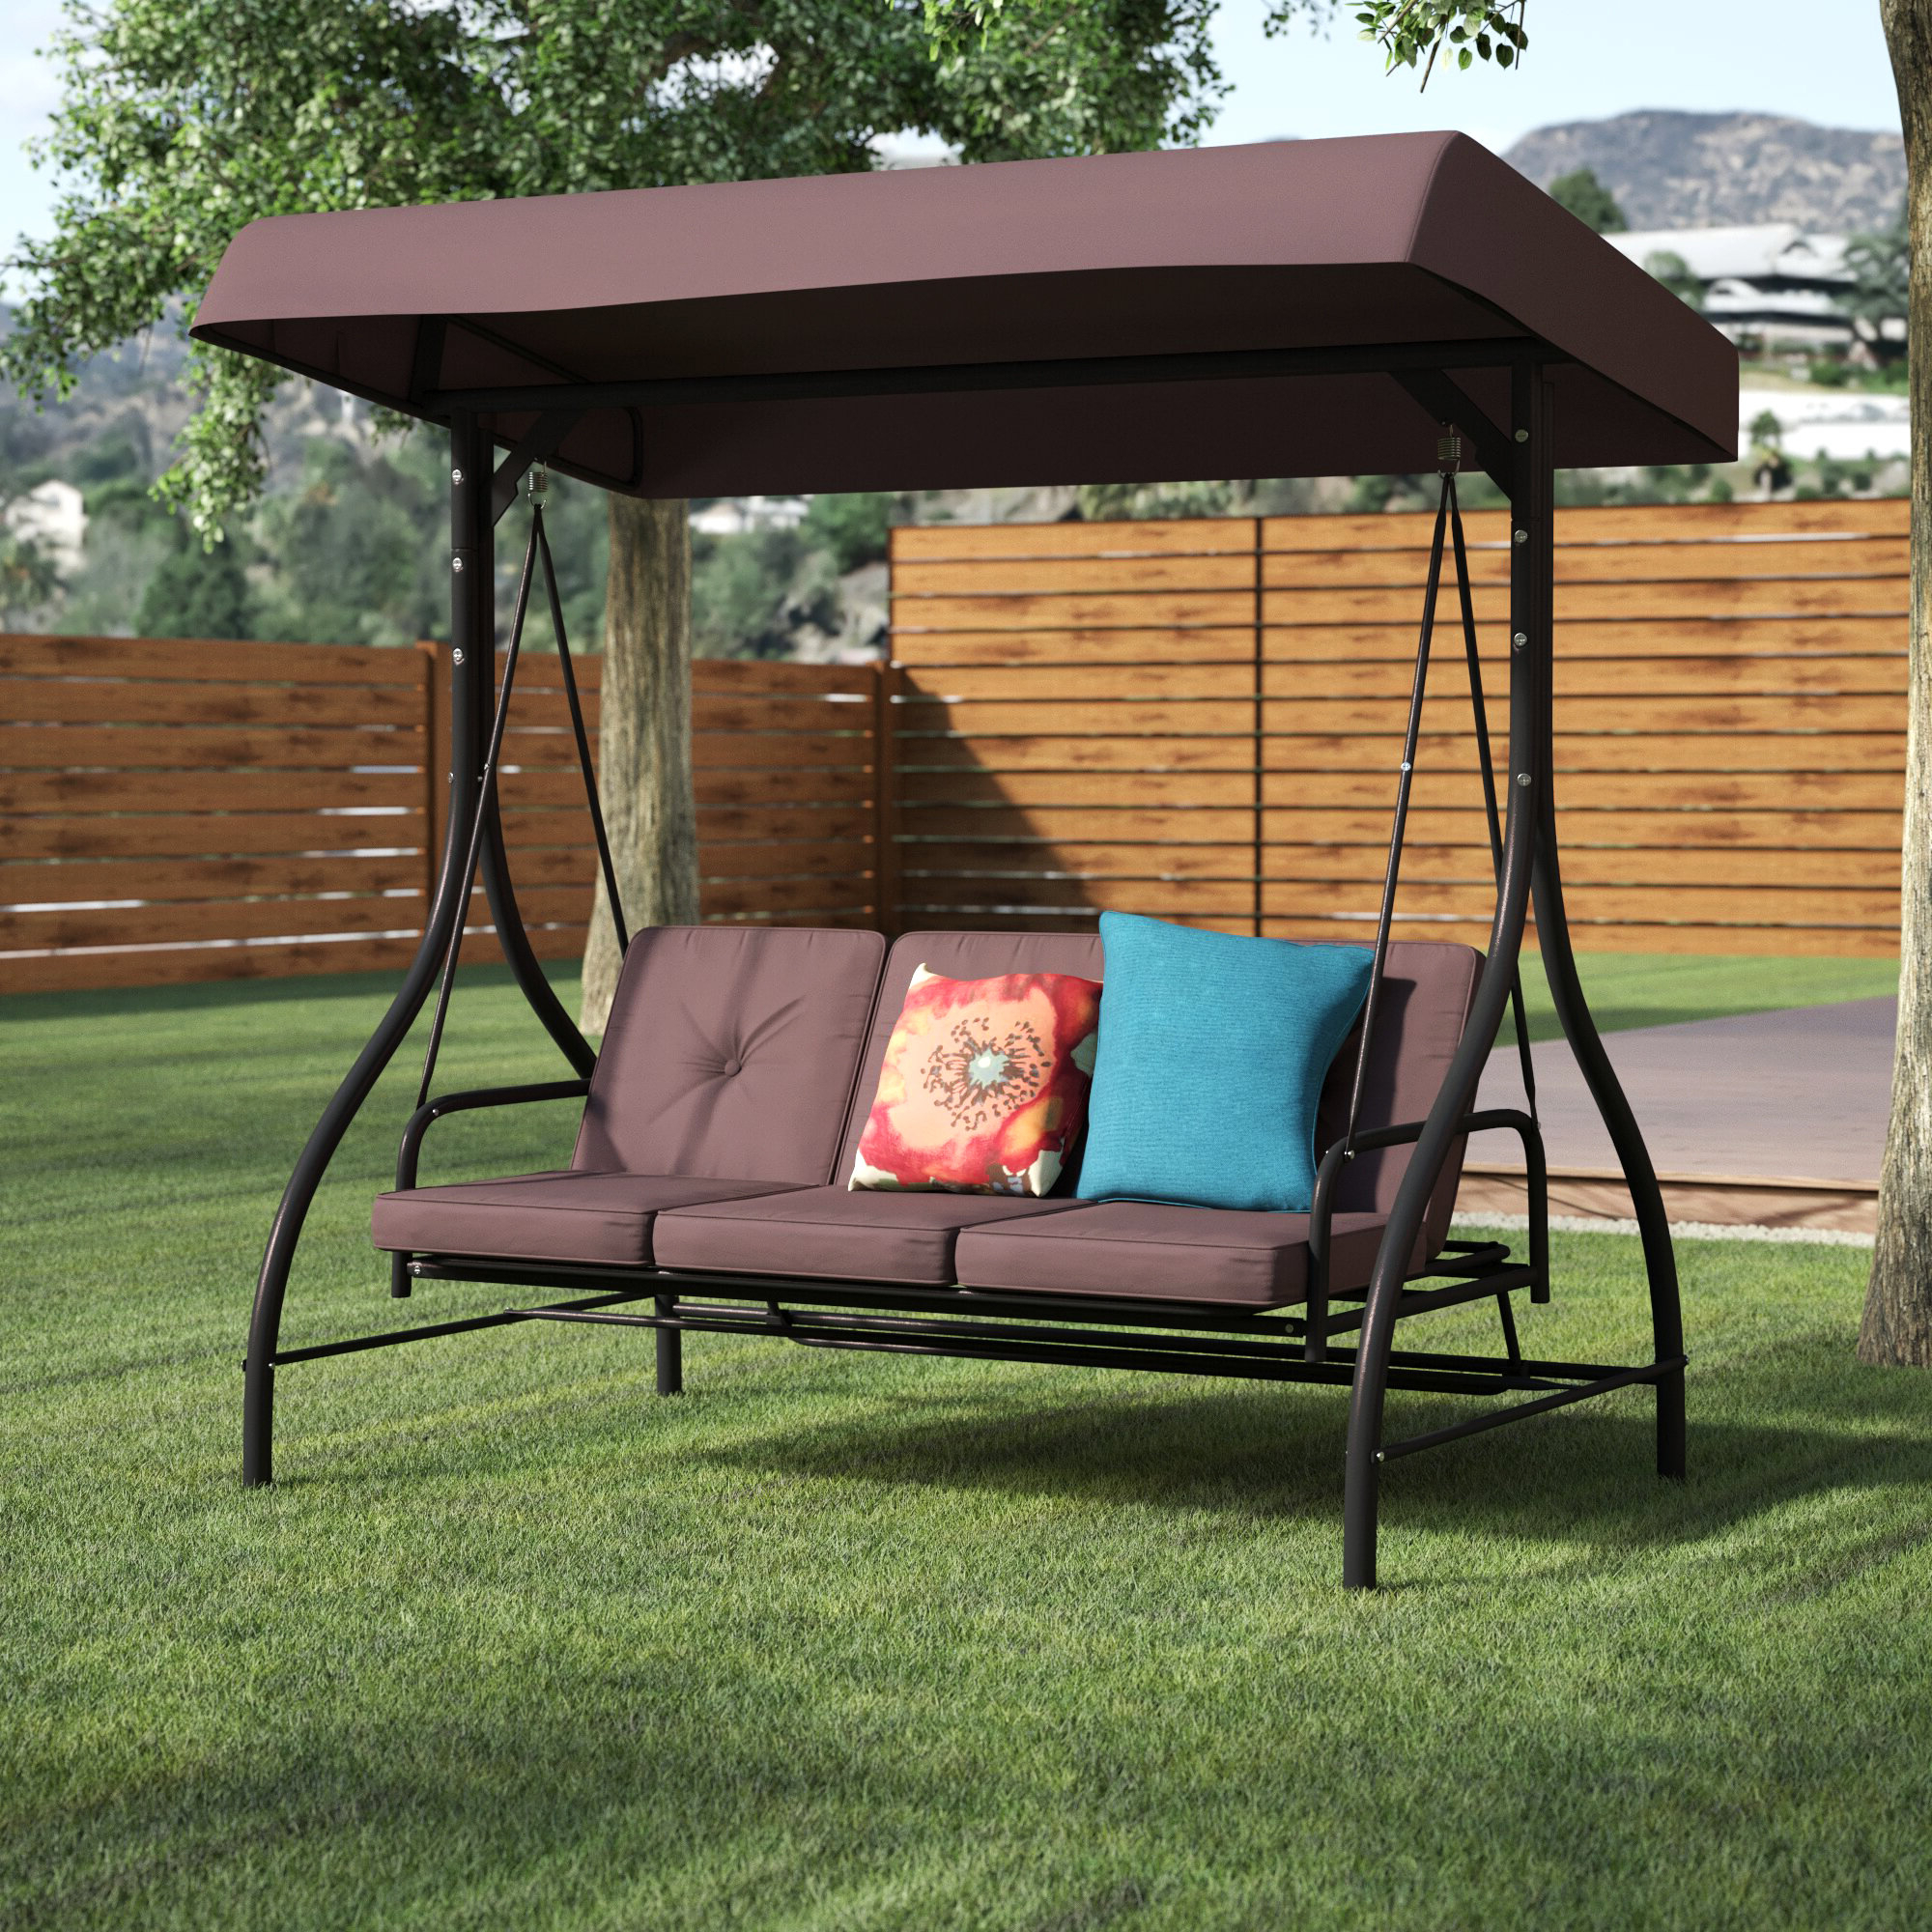 Favorite Canopy Patio Porch Swing With Stand In Lasalle Canopy Patio Porch Swing With Stand (View 3 of 30)